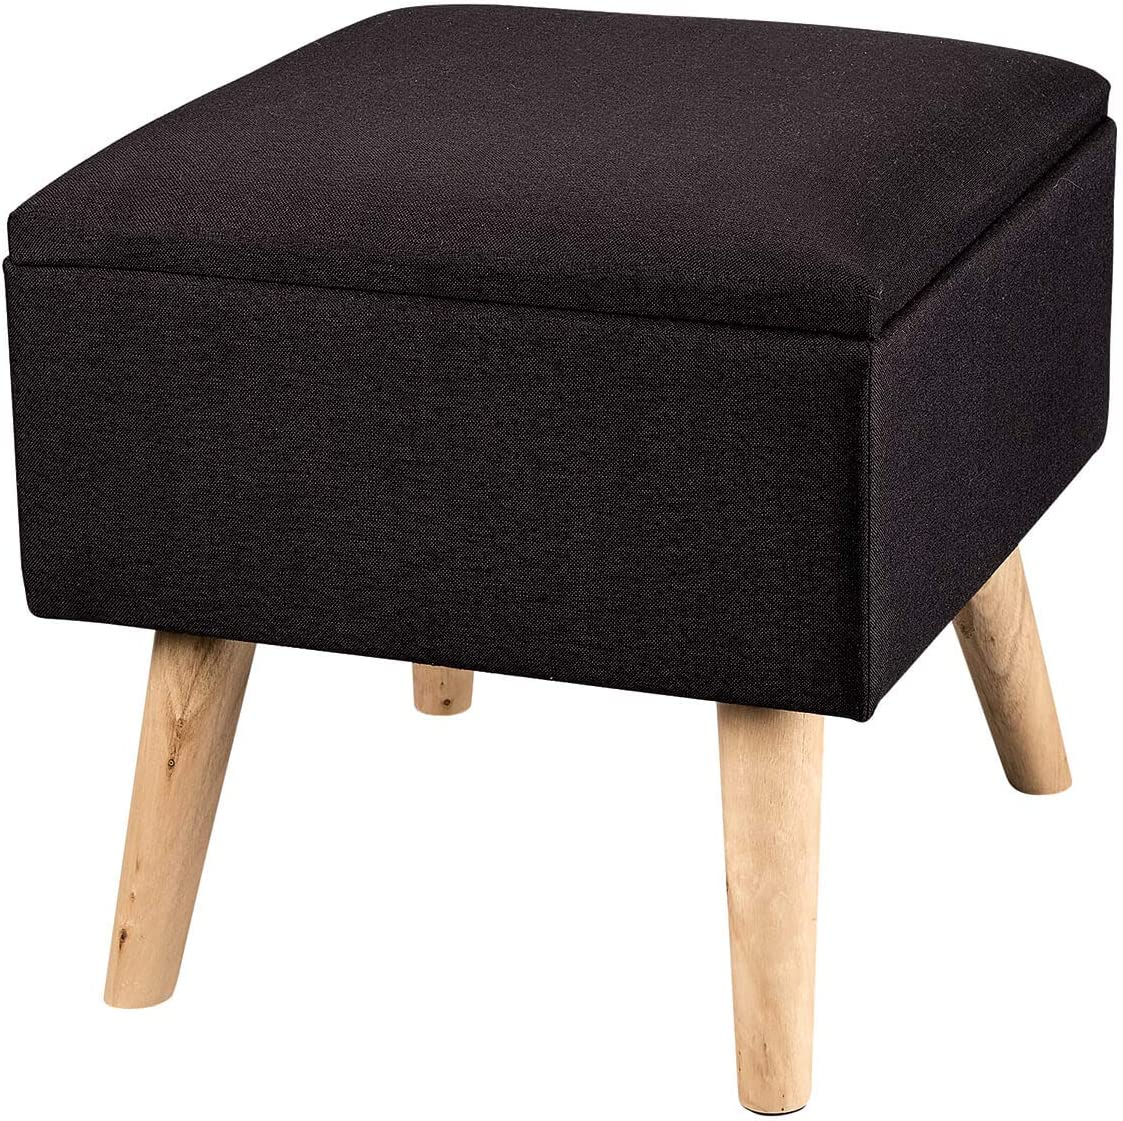 OakRidge Square Footstool Storage Ottoman with Hinged Cover, Black